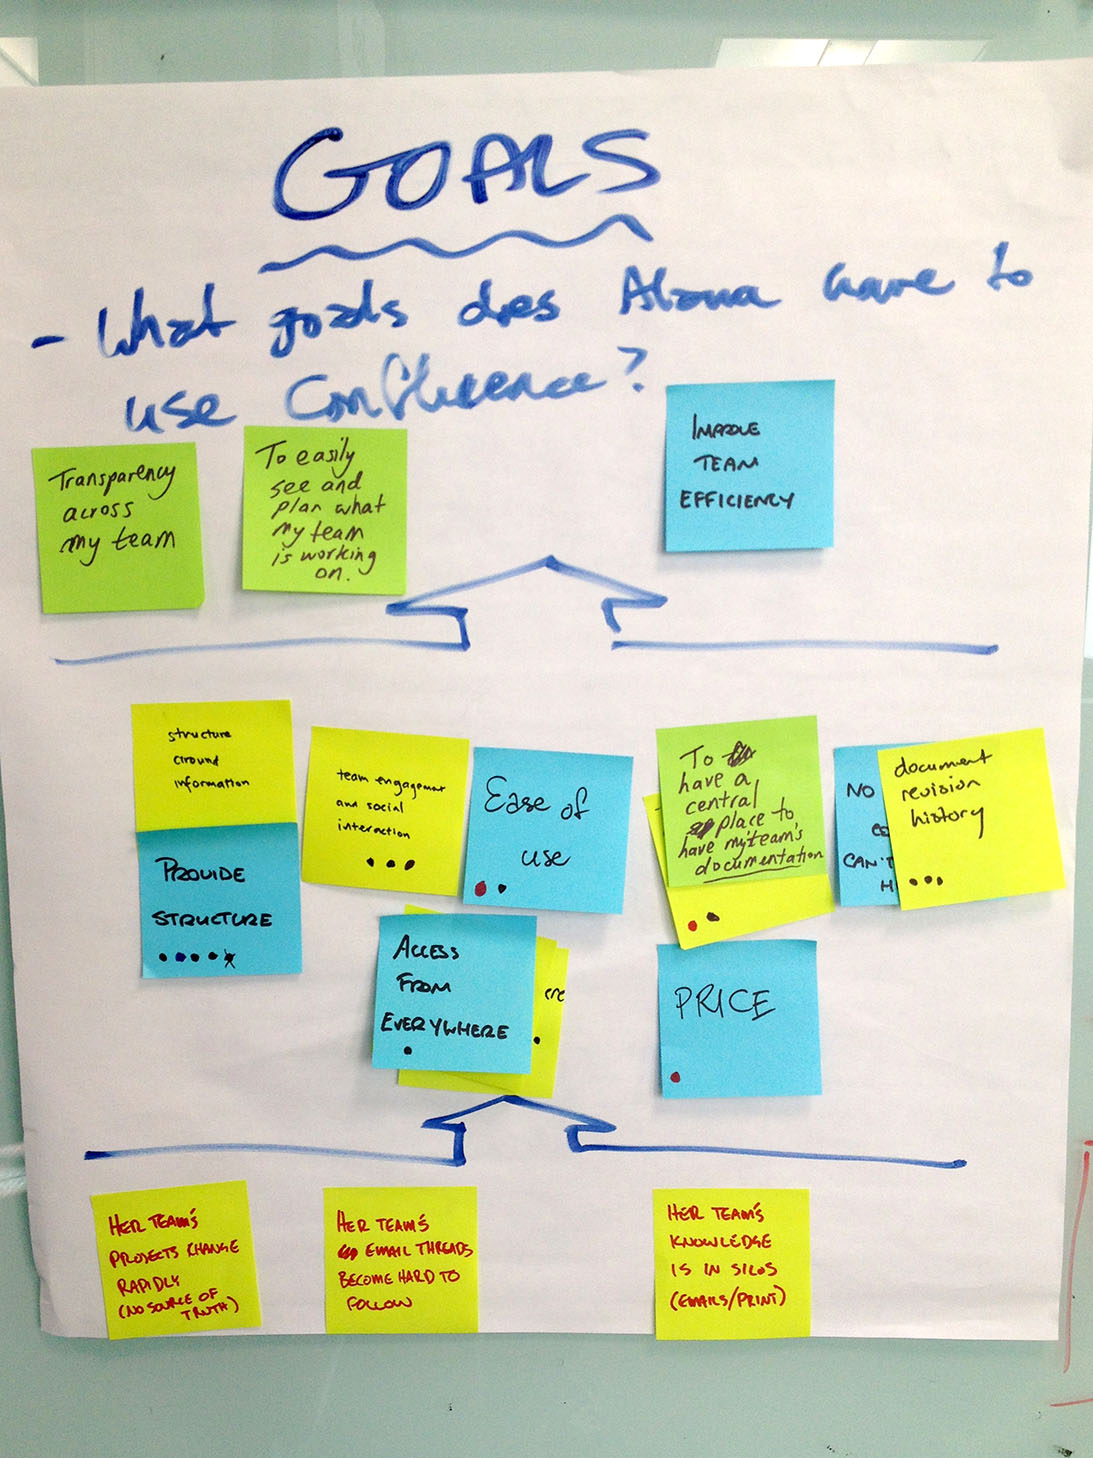 Customer Journey Mapping   A Step by Step Guide   Atlassian Team